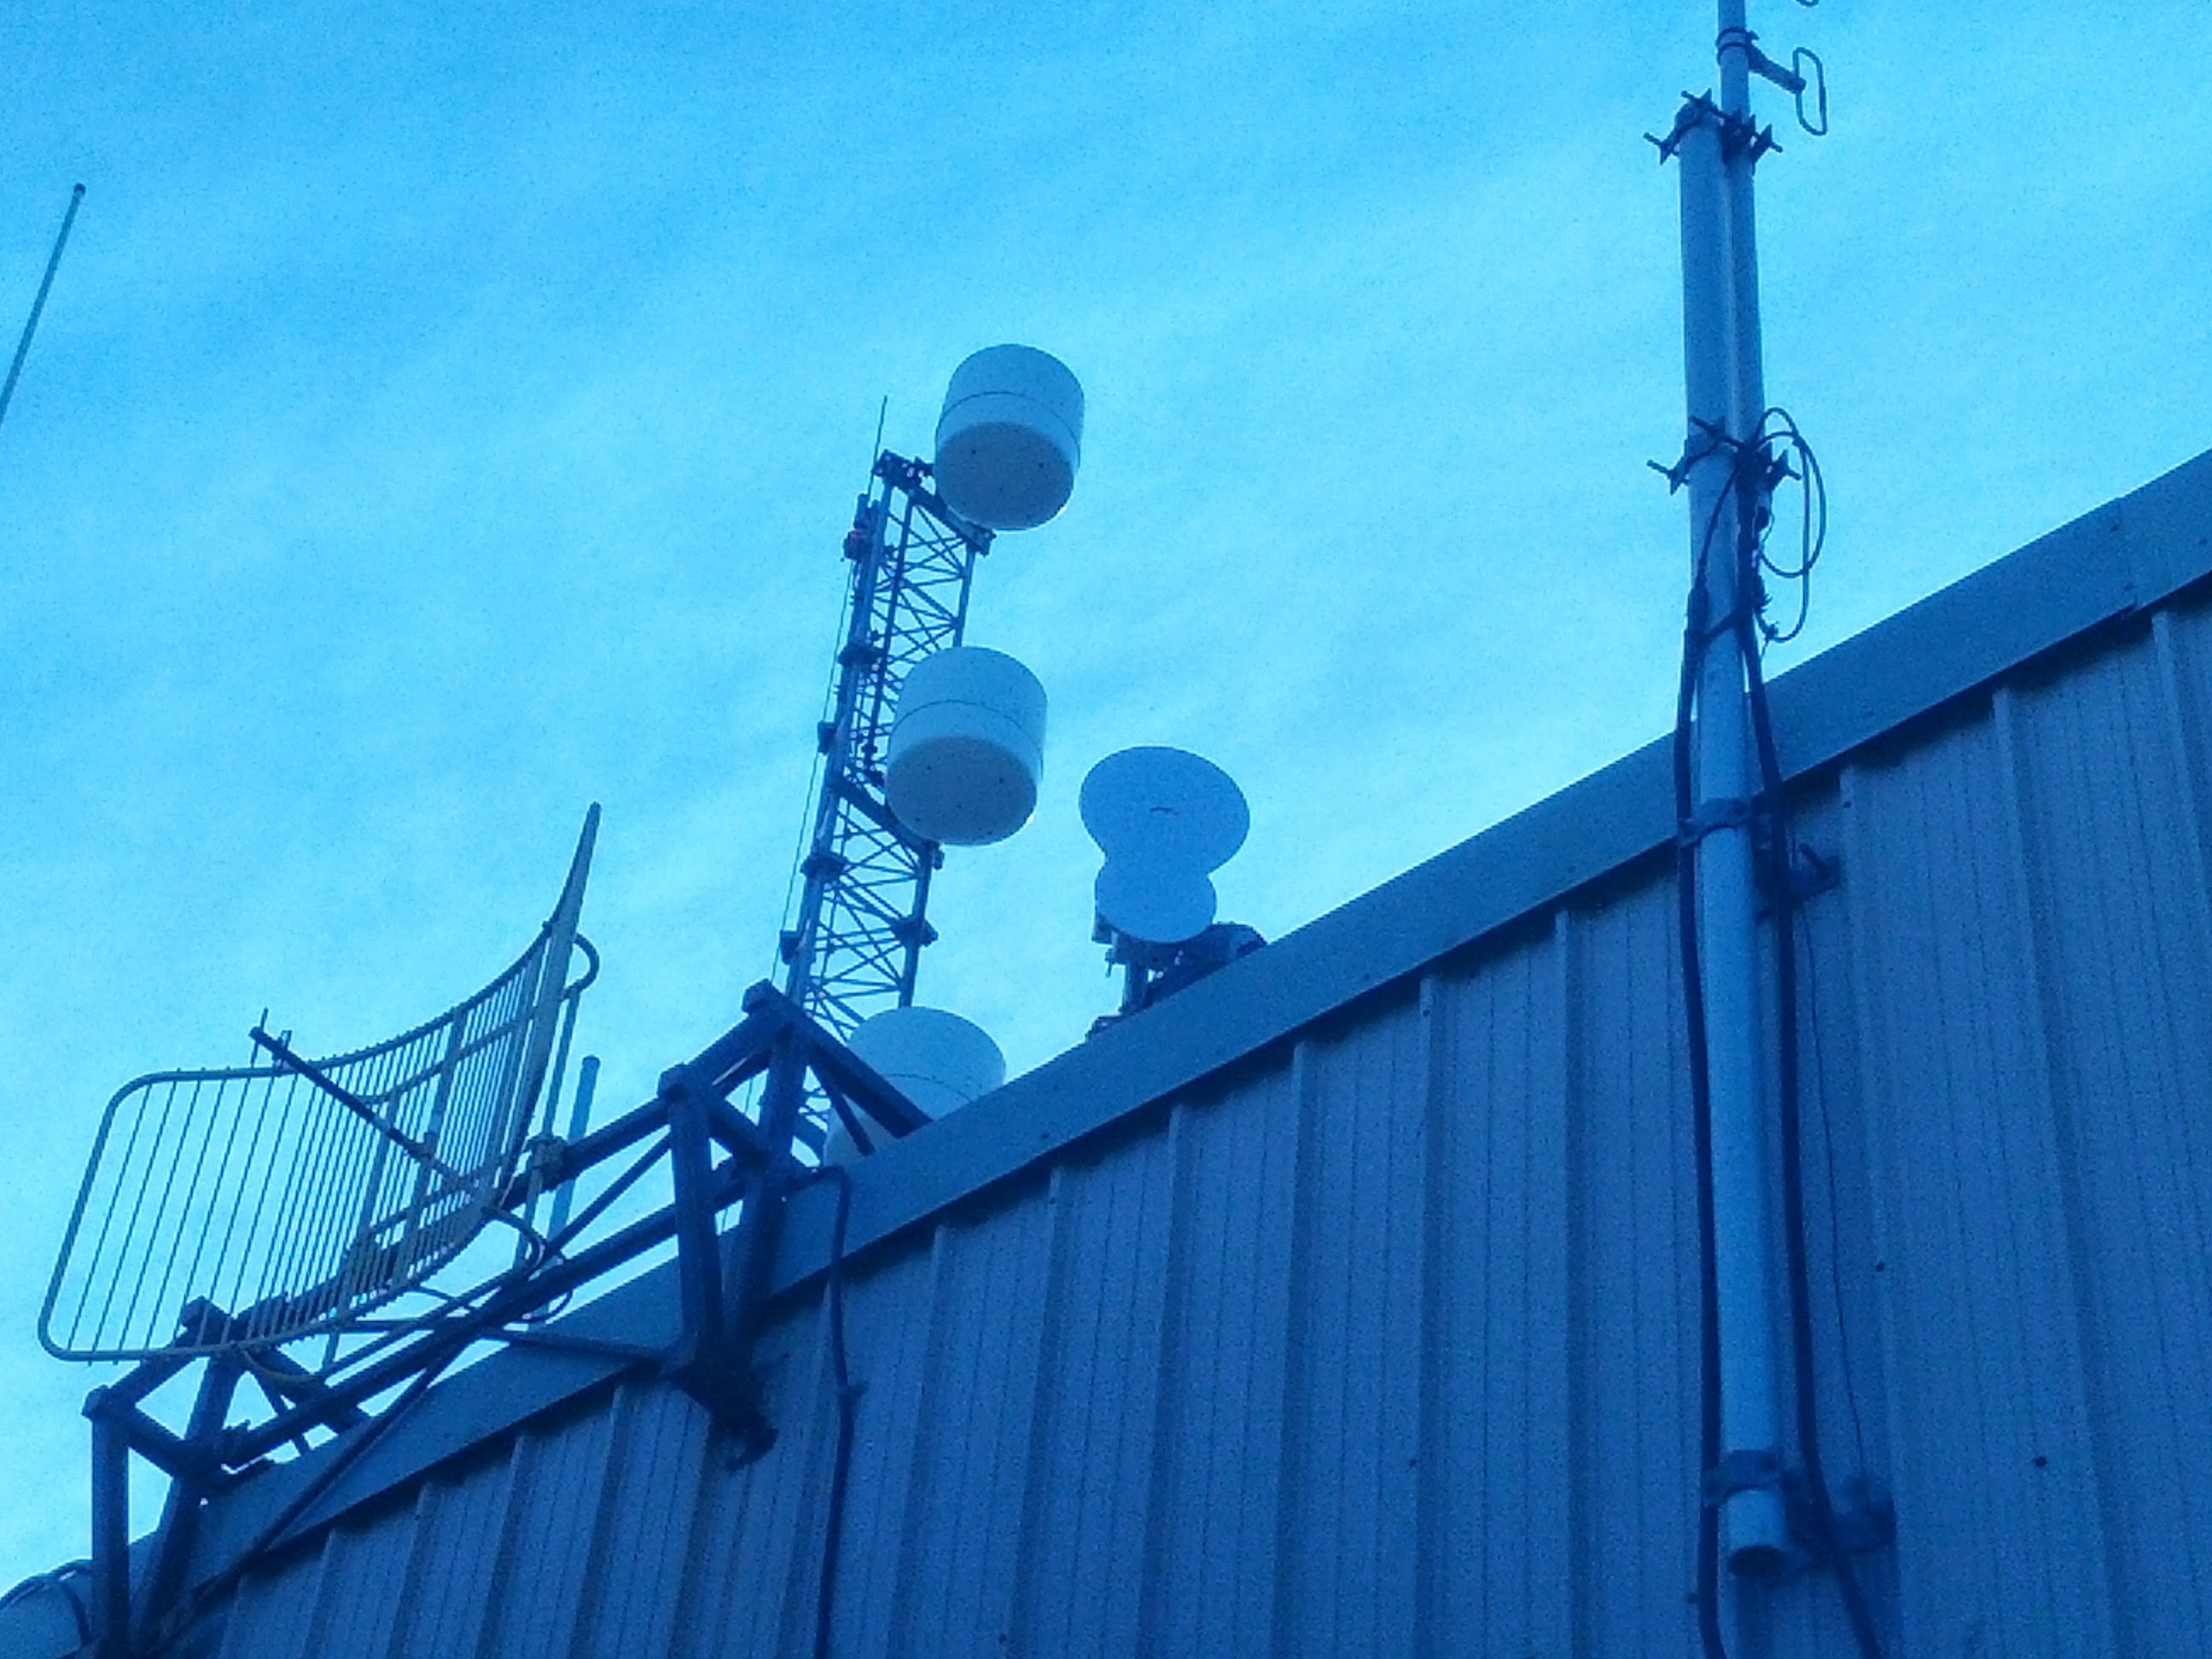 The Air Fiber ... first dish on the right-side